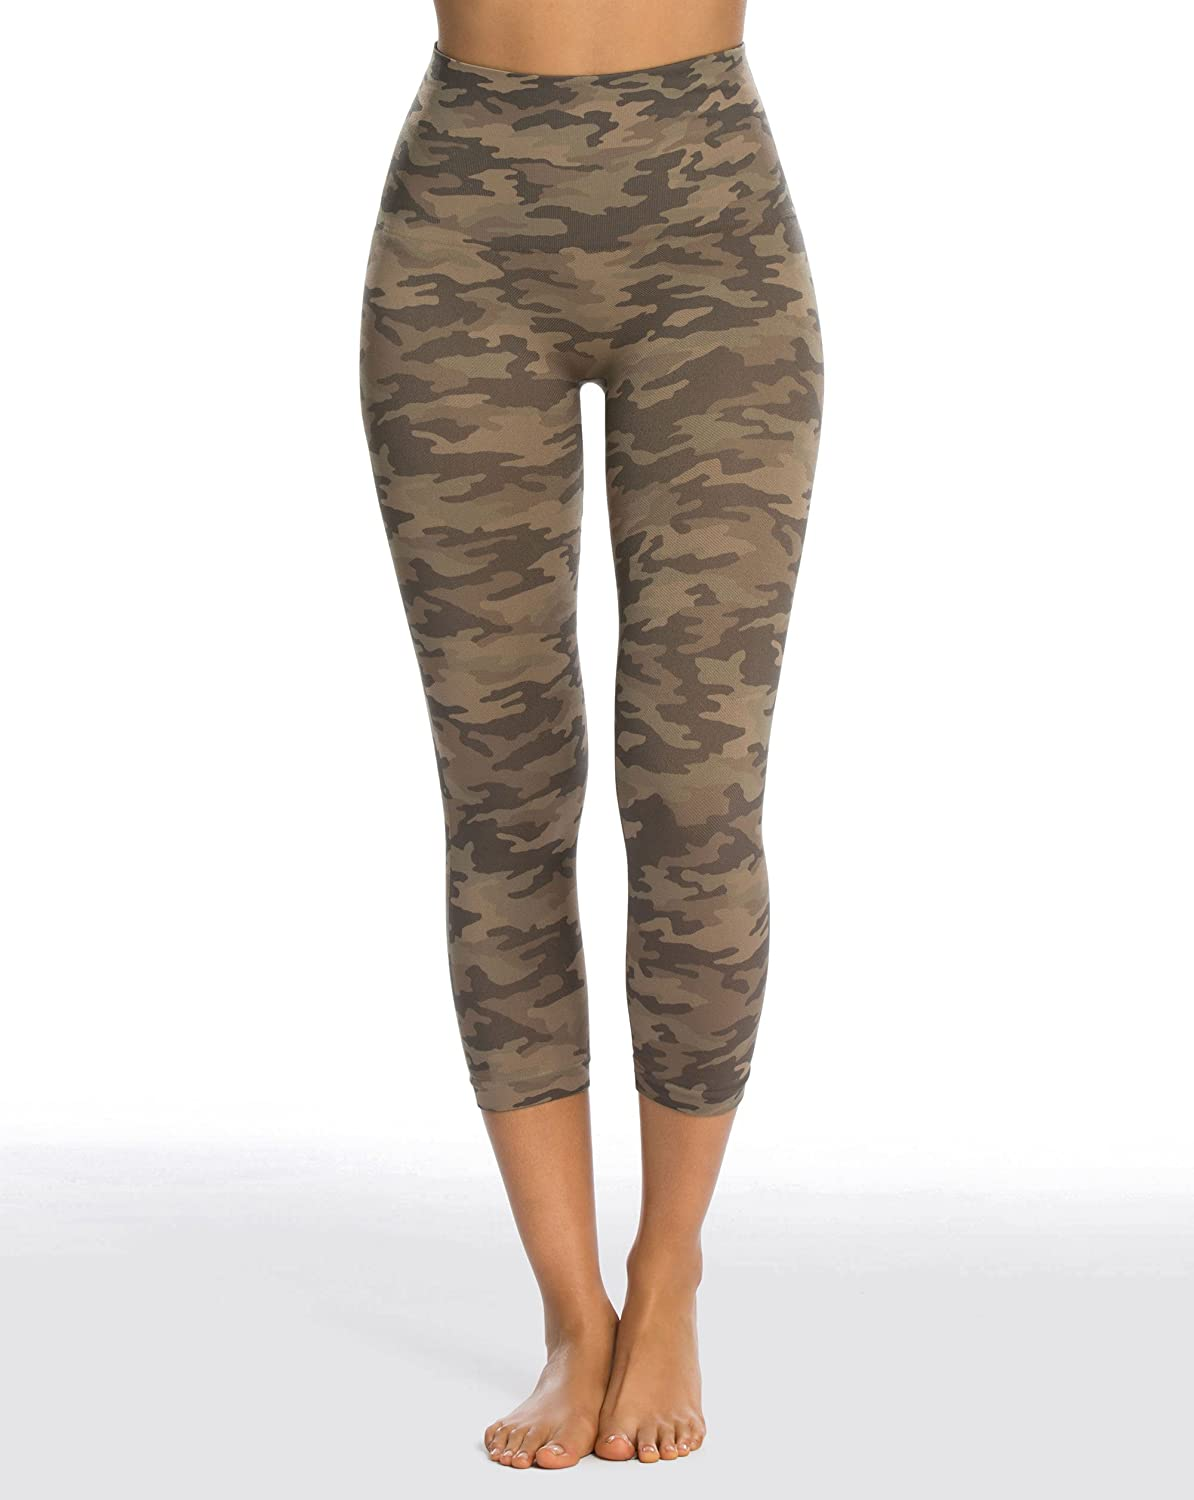 CROPPED LAMN LEGGINGS for sale